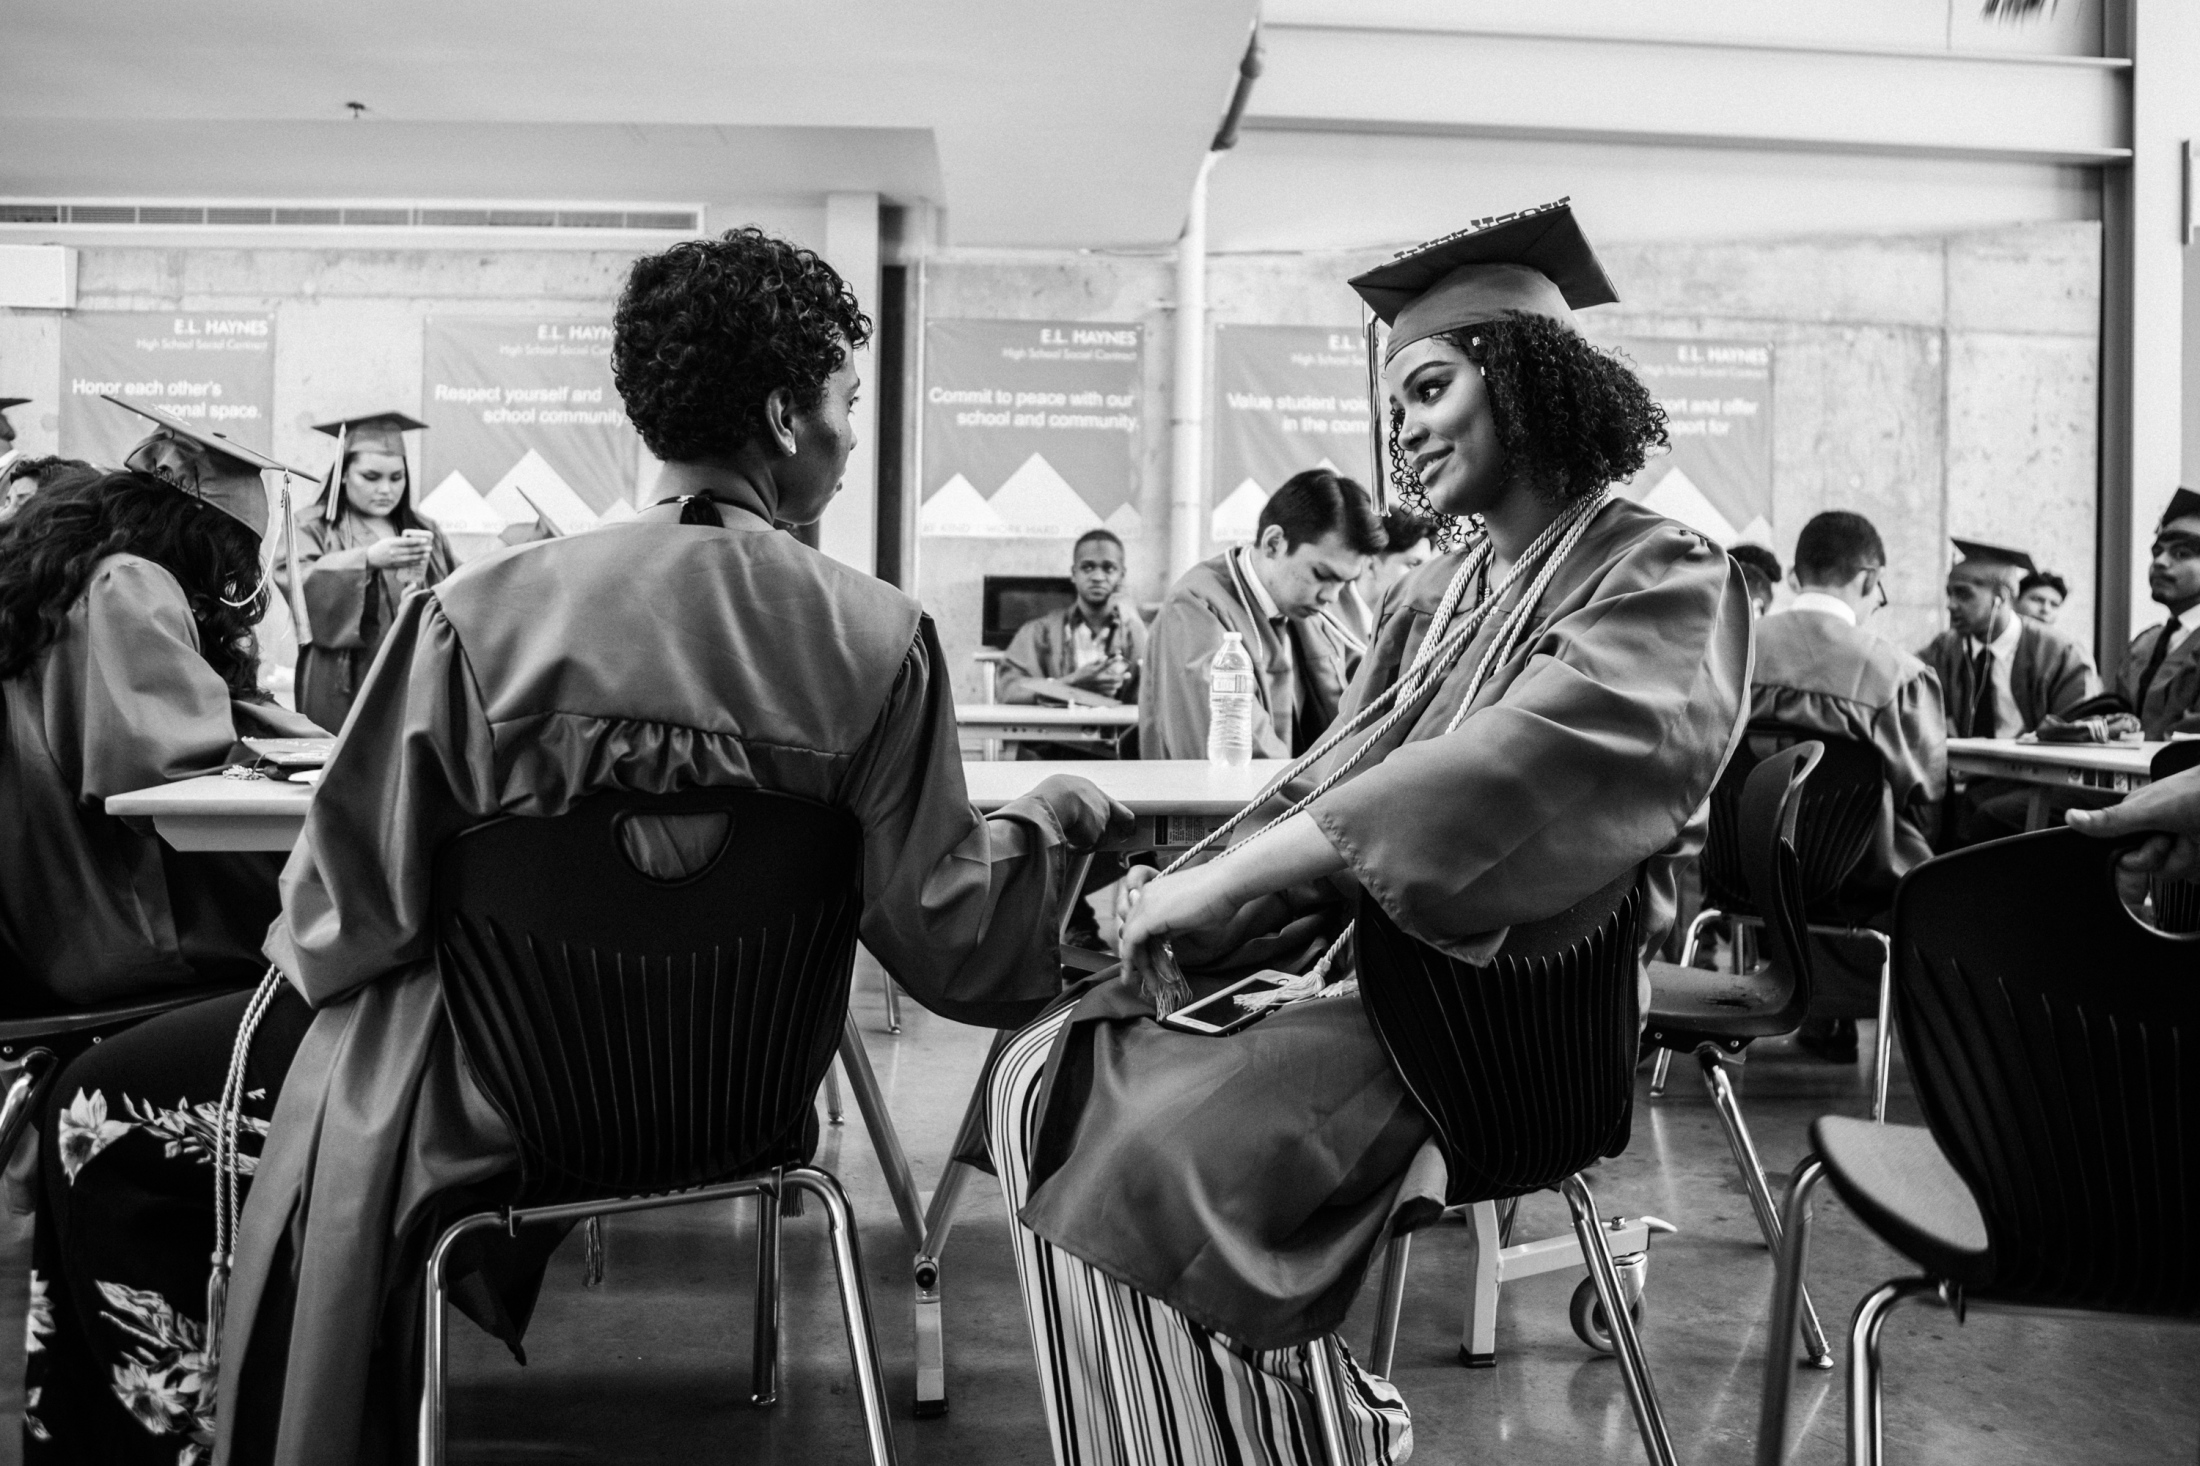 """Dasani Watkins chats with her friend at E.L. Haynes High School on June 16, 2018, before going to Howard University for her graduation ceremony. """"I approached my high school career as if it were a race to college…All I wanted to do was escape the life of poverty, to not become a statistic in a world that sees all black people as lazy, as our president proclaims. Fear of failure guided my approach. I was a hare trying to win a race,"""" says Watkins. Watkins graduated as the salutatorian of her high school."""